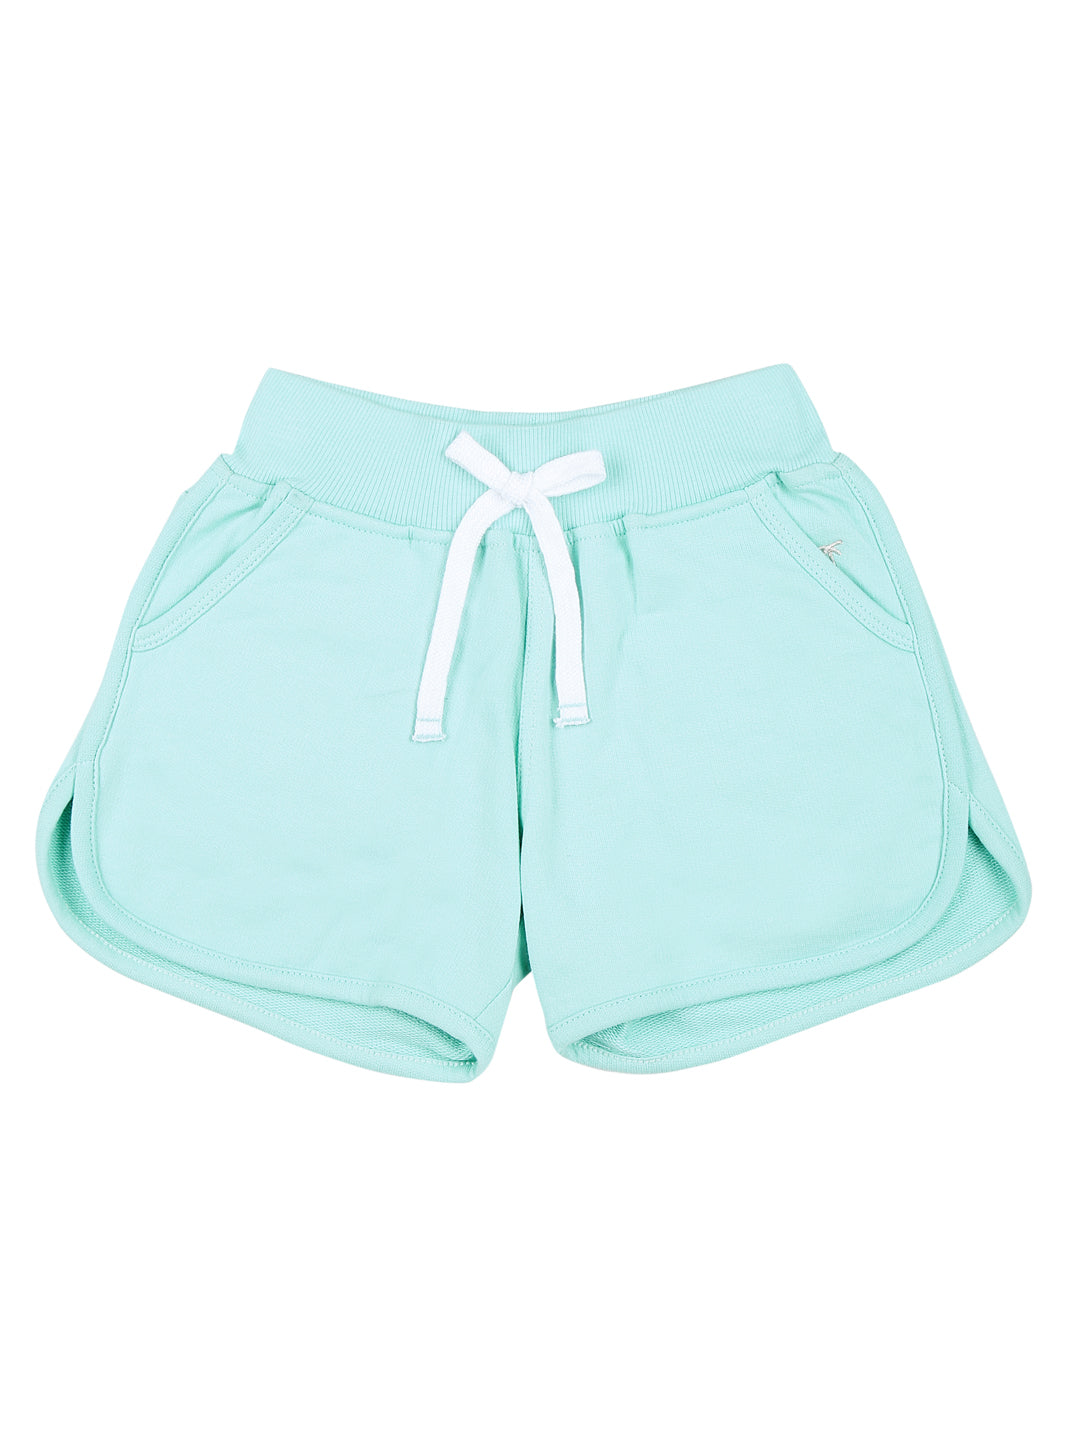 Blue Girls Hot Shorts